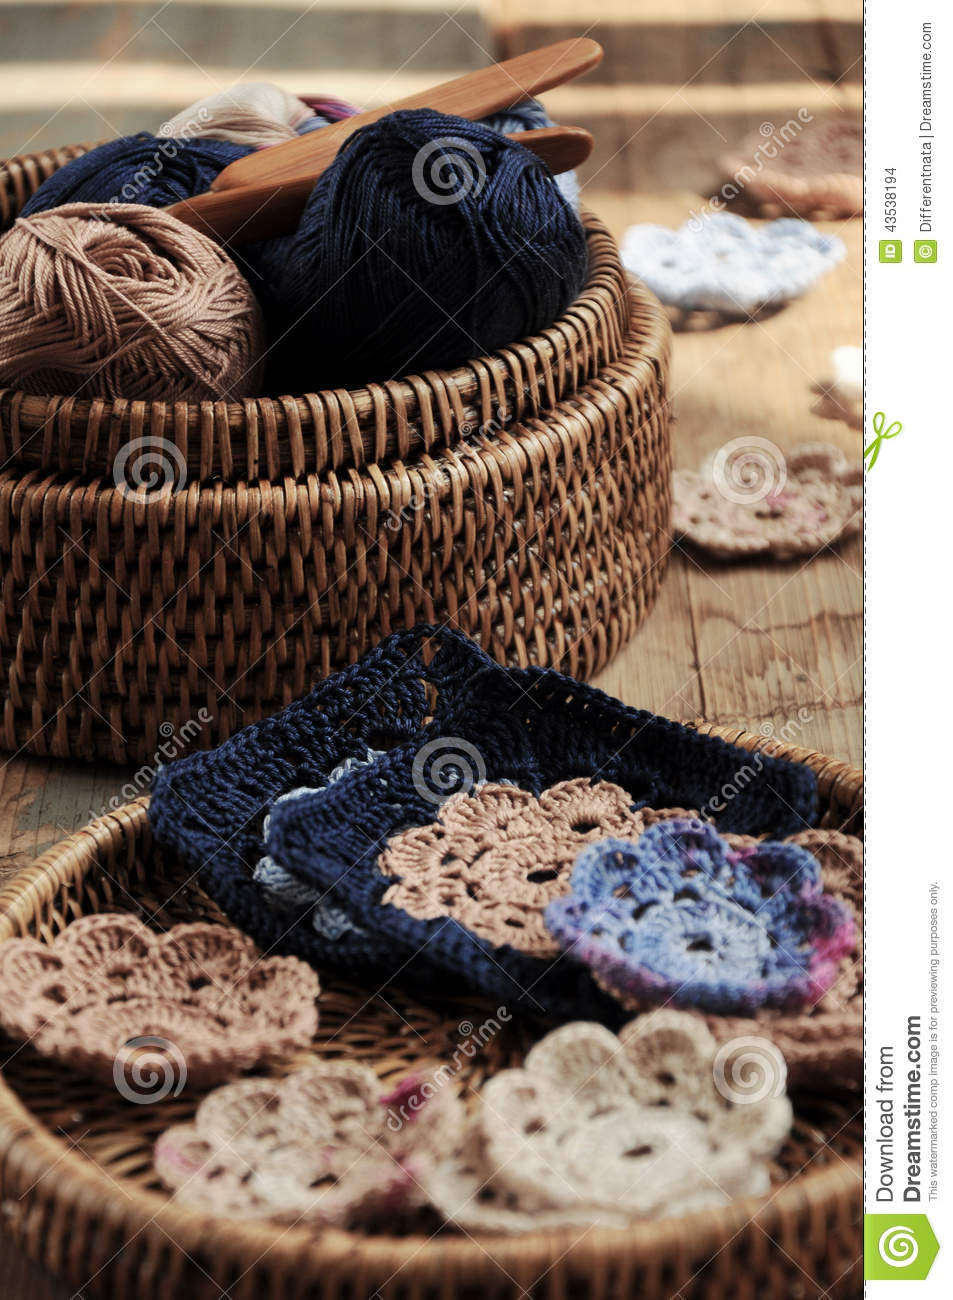 Box of yarn and crocheted flowers